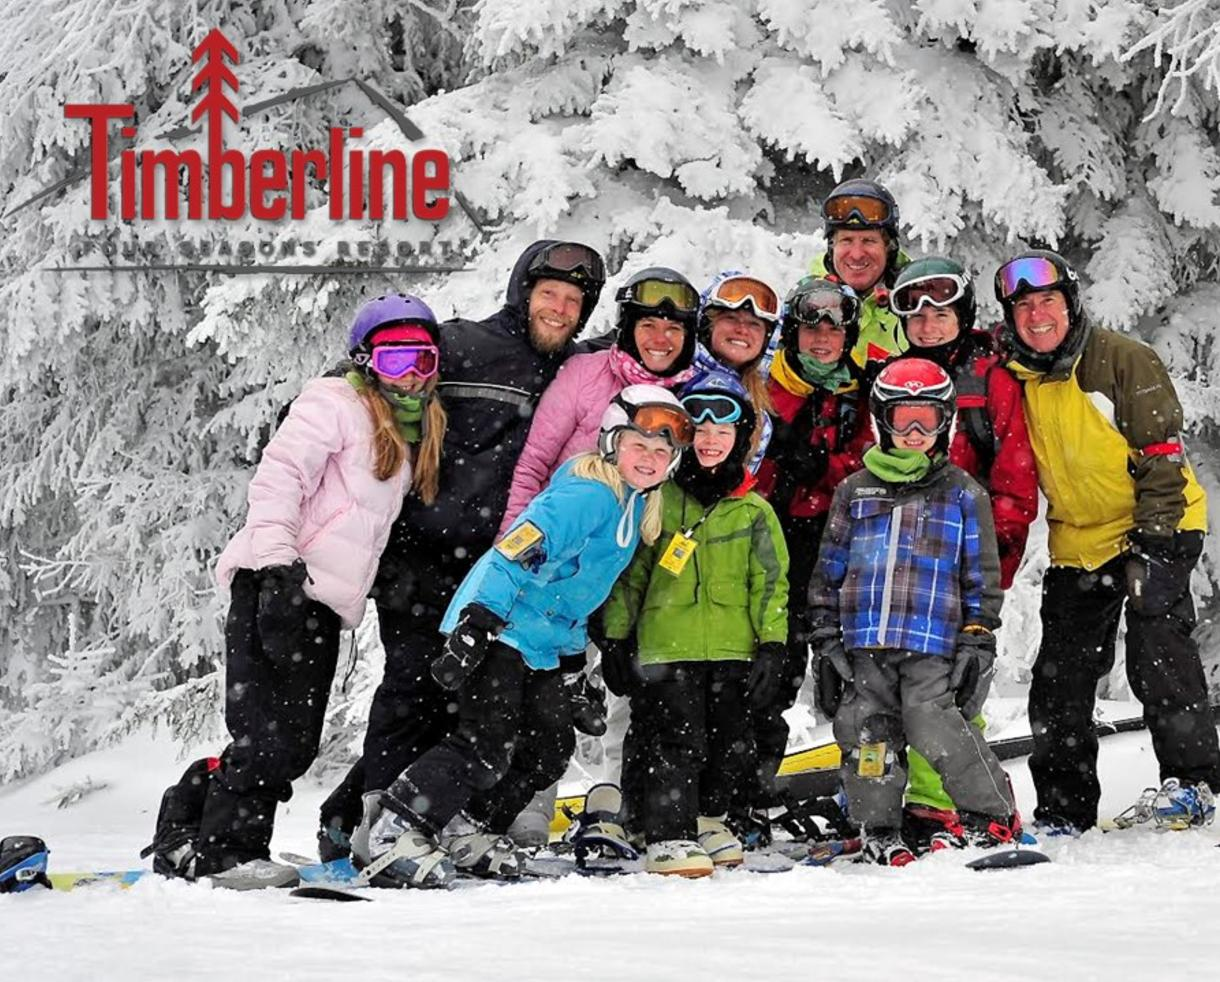 $49+ for Adult or Child Ski Lift Ticket & Helmet at Timberline Four Seasons Resort in West Virginia + OVERNIGHT STAY OPTION! ($82 Value - 41% Off)